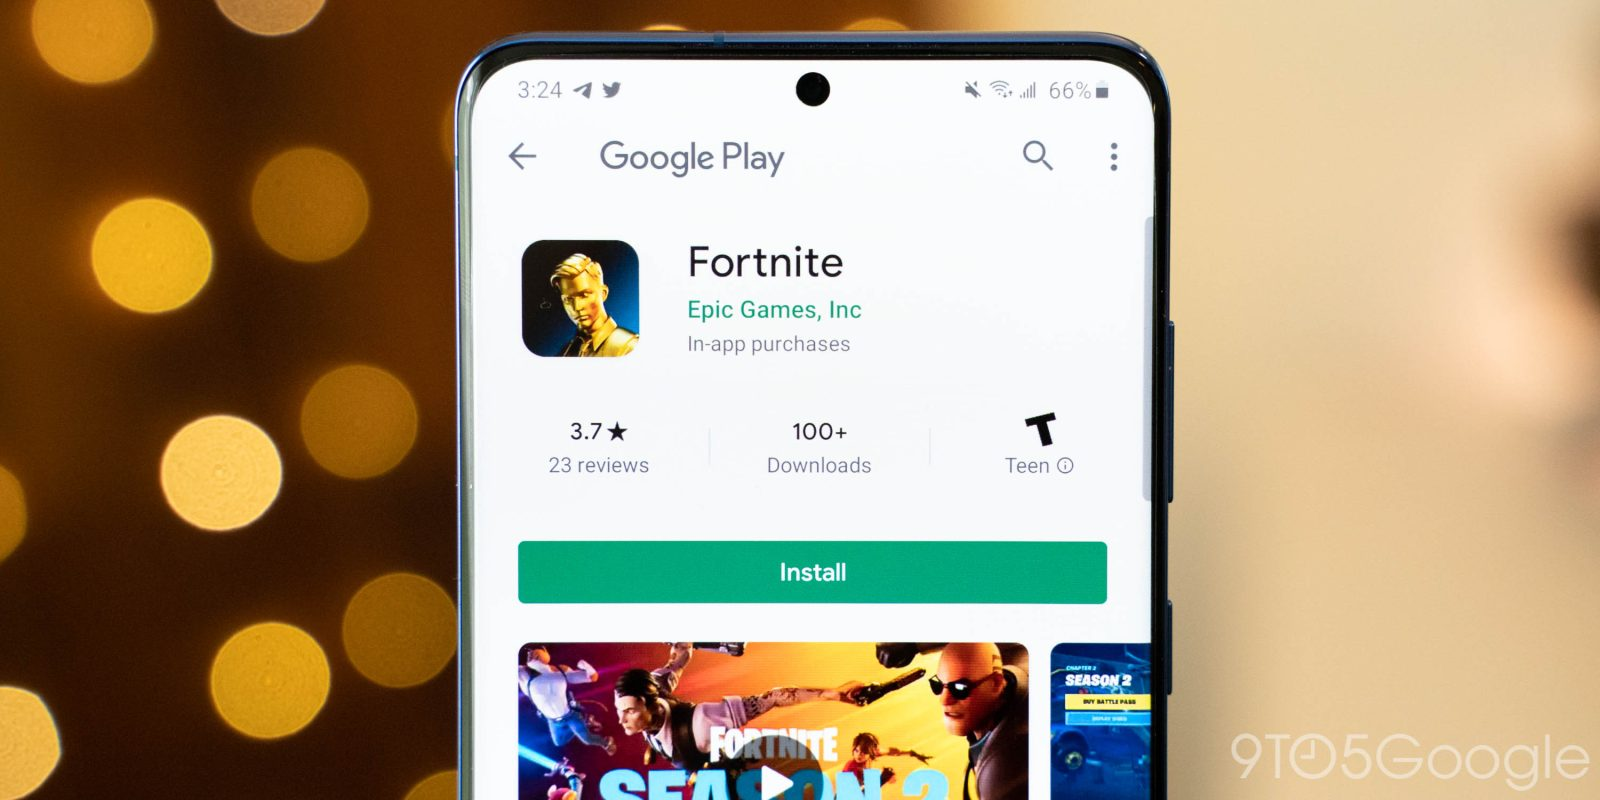 Fortnite arrives on the Google Play Store for Android users ...